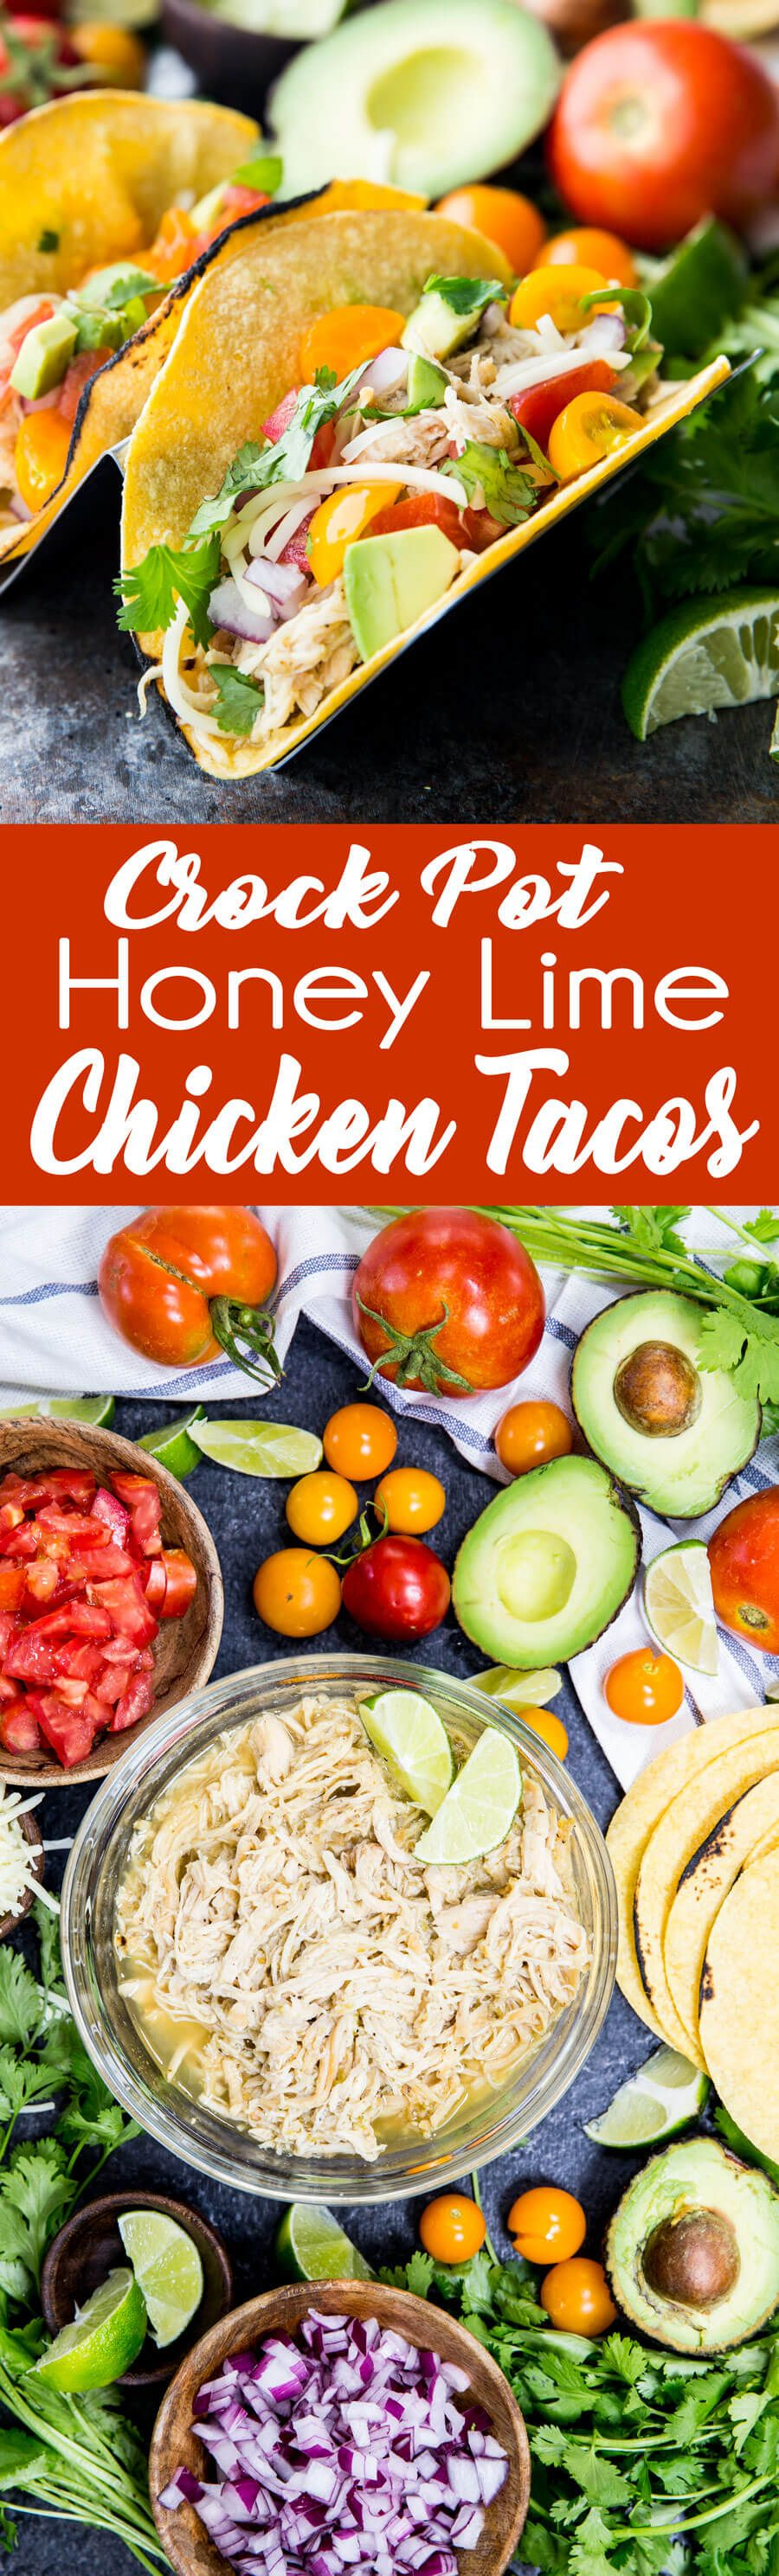 Slow Cooker Honey Lime Chicken Tacos - Easy Peasy Meals